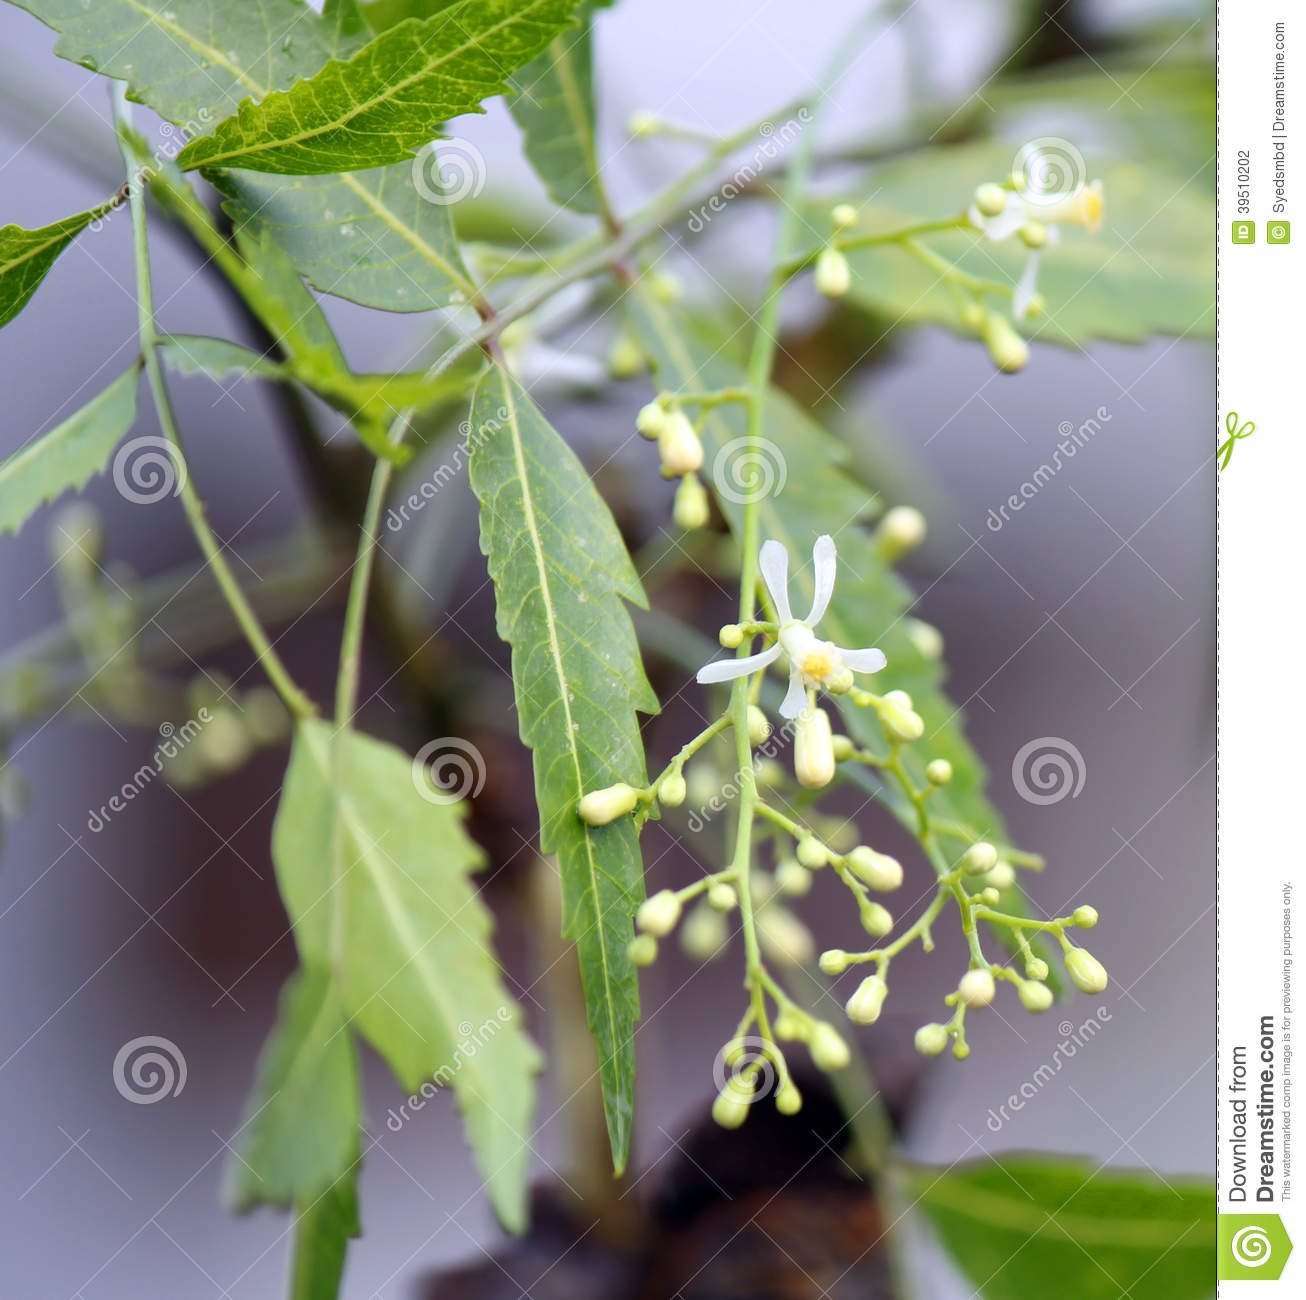 Neem leaves with flower